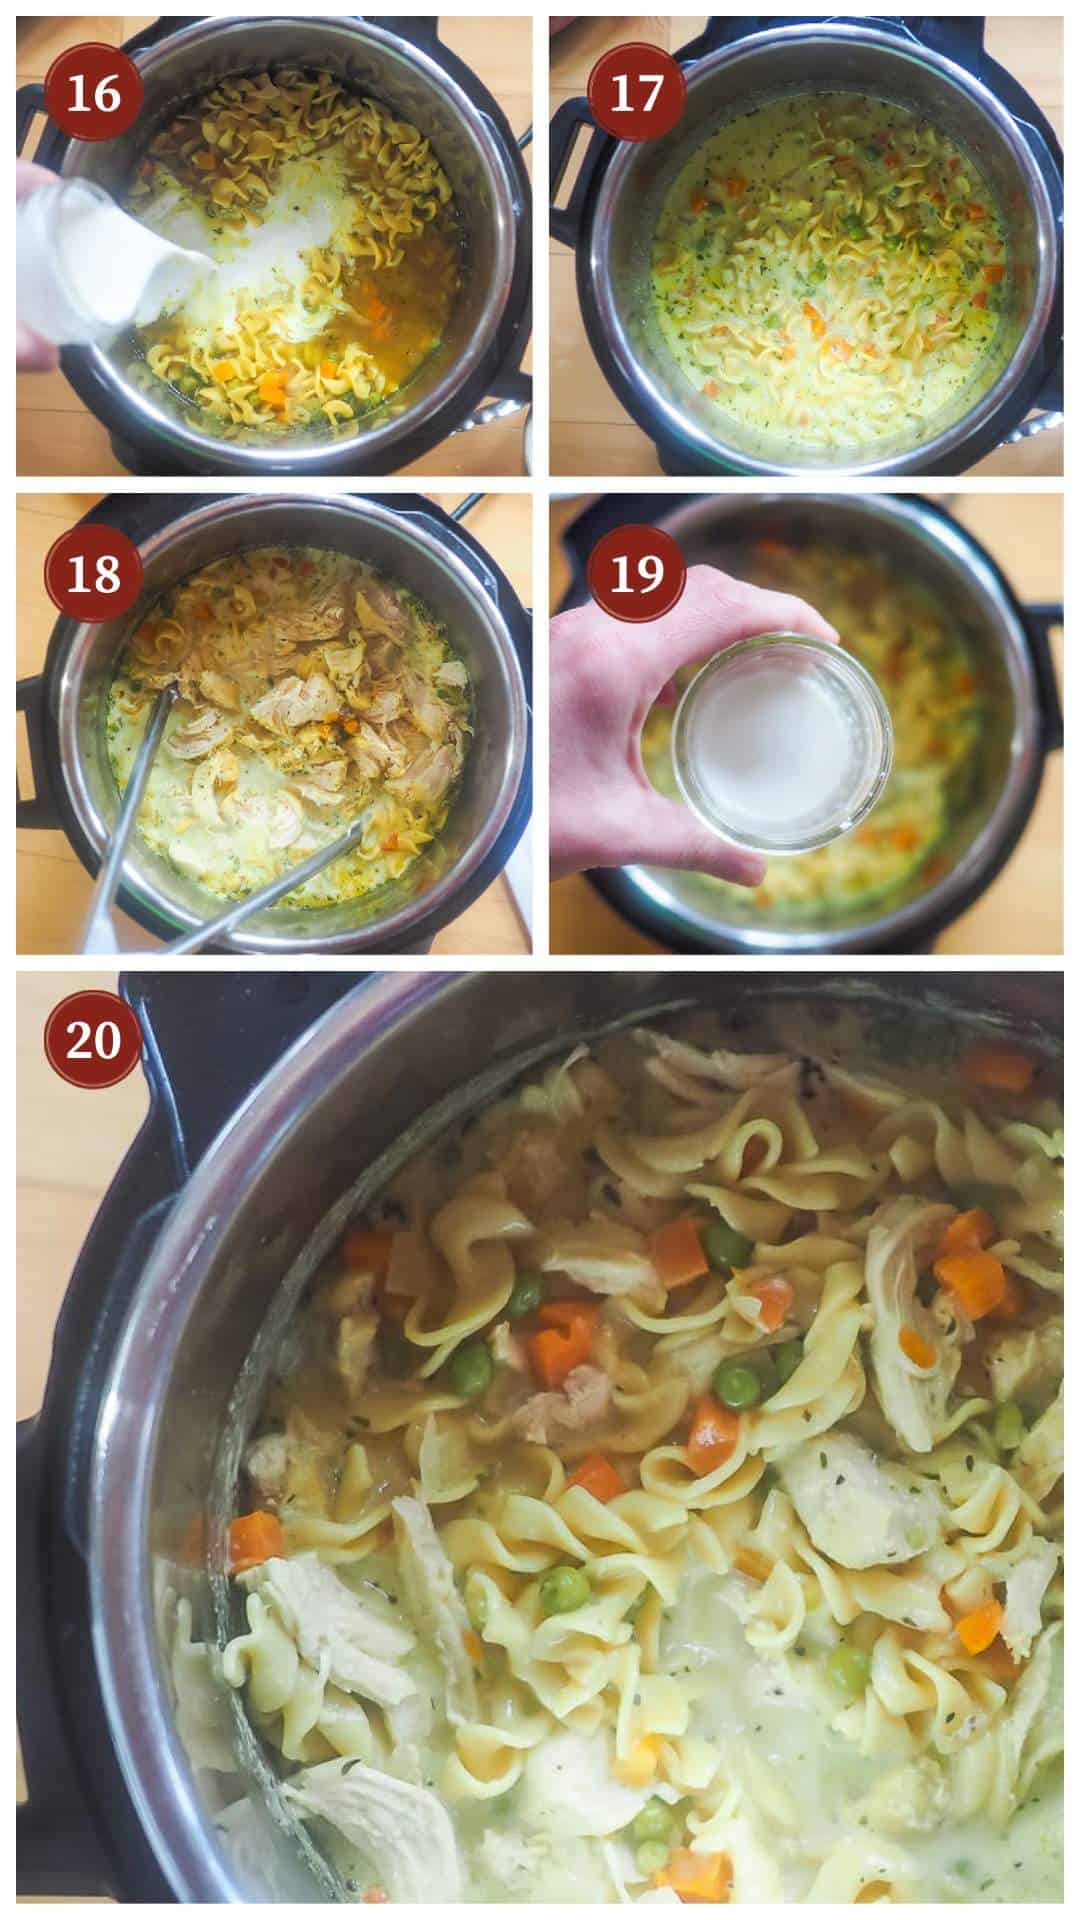 A collage of images showing the process of making instant pot chicken pot pie soup, steps 16 - 20.